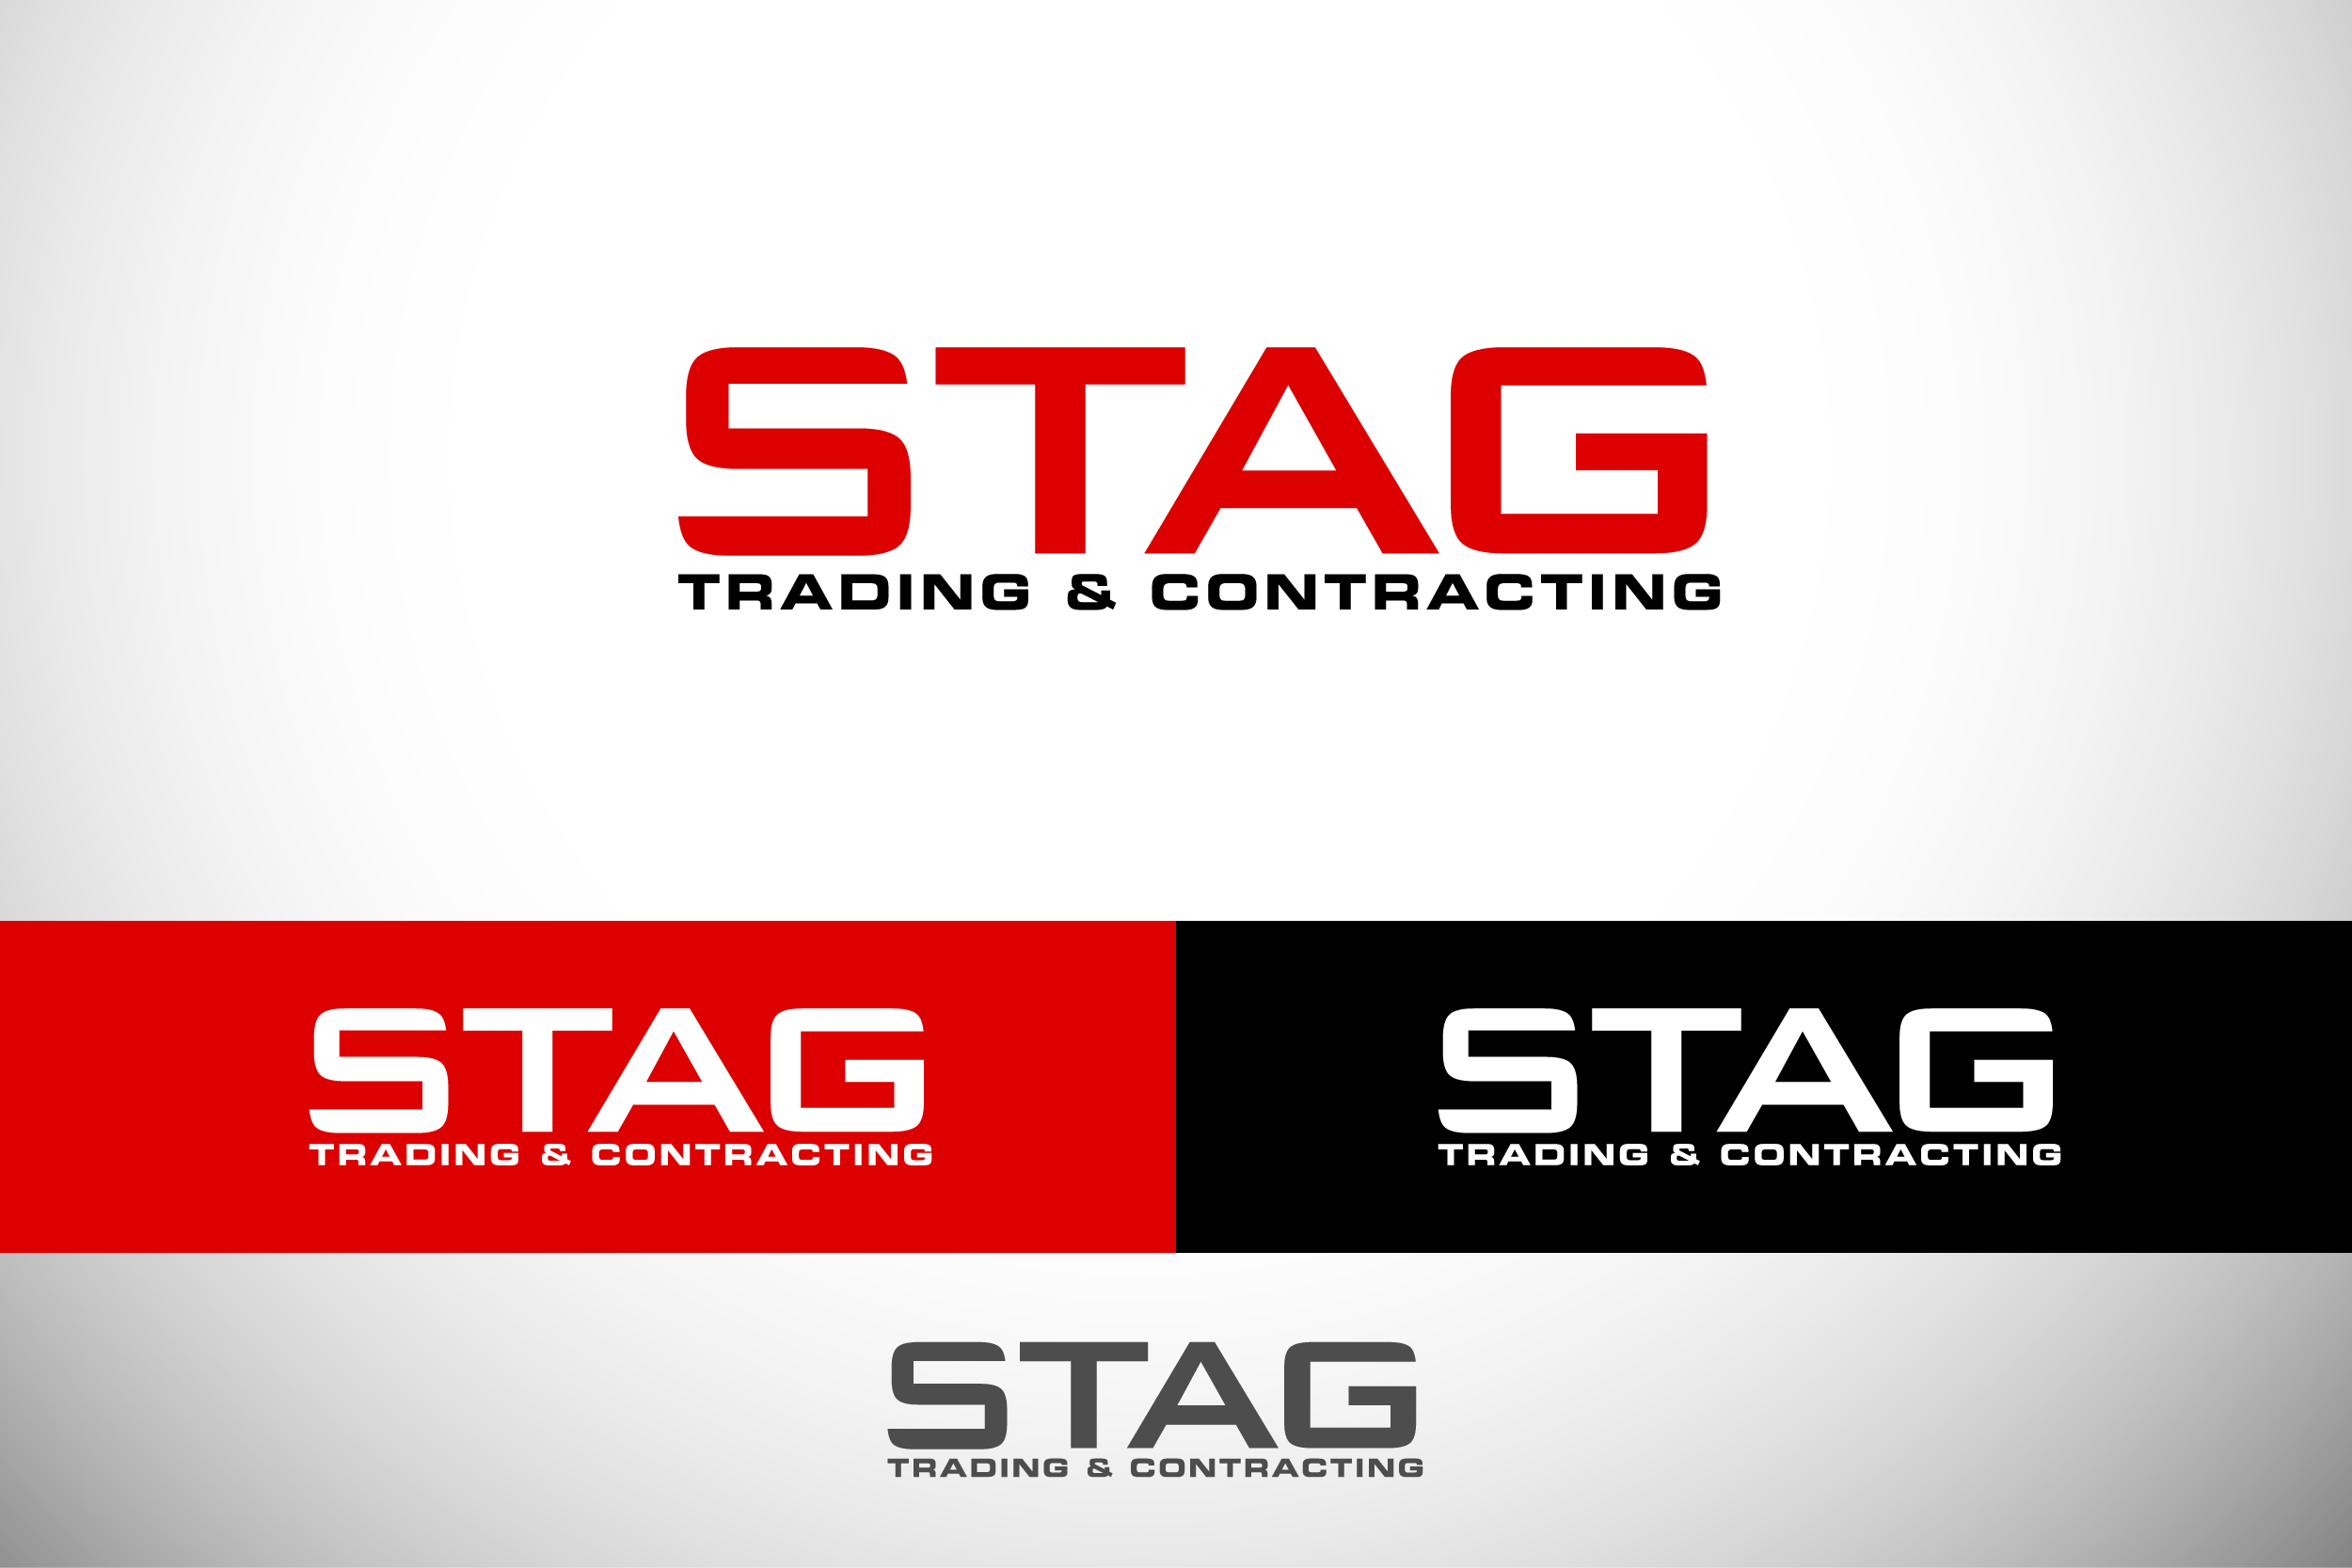 Logo Design by Private User - Entry No. 253 in the Logo Design Contest Captivating Logo Design for STAG Trading & Contracting.